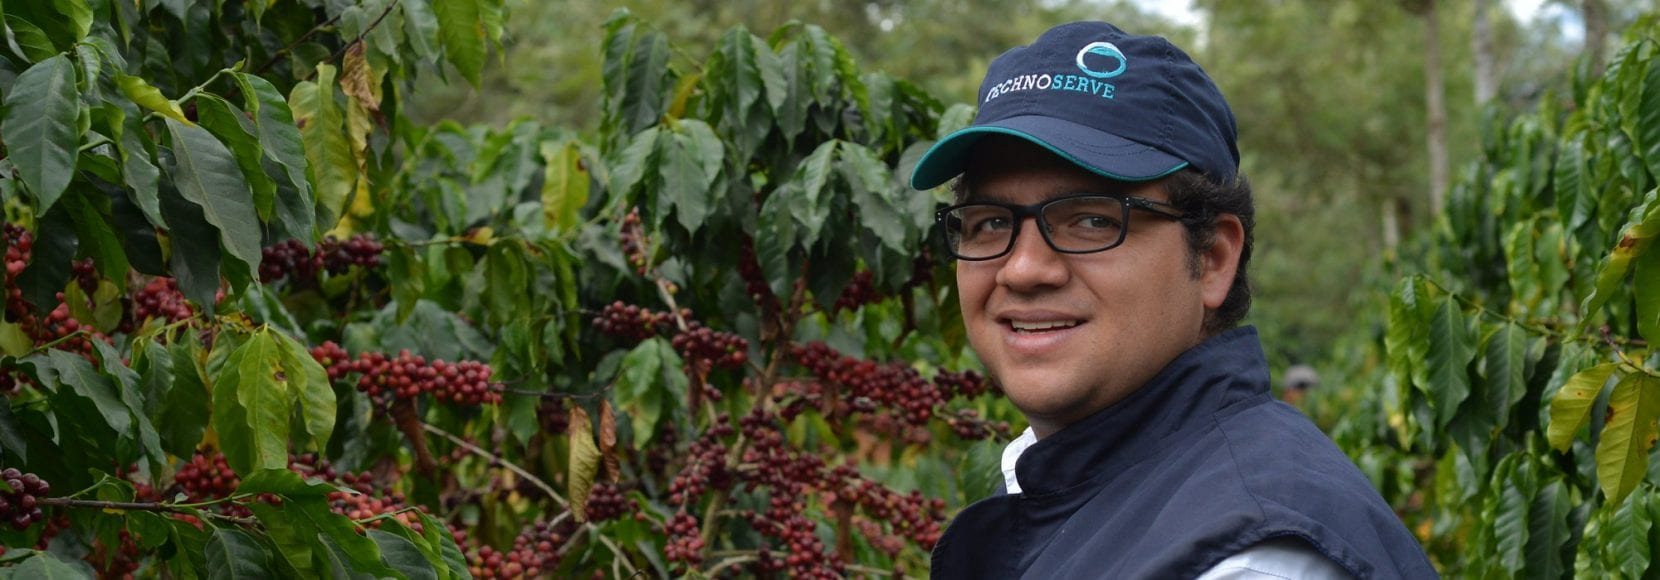 Beneficio Cafe Bella Vista coffee project in Guatemala